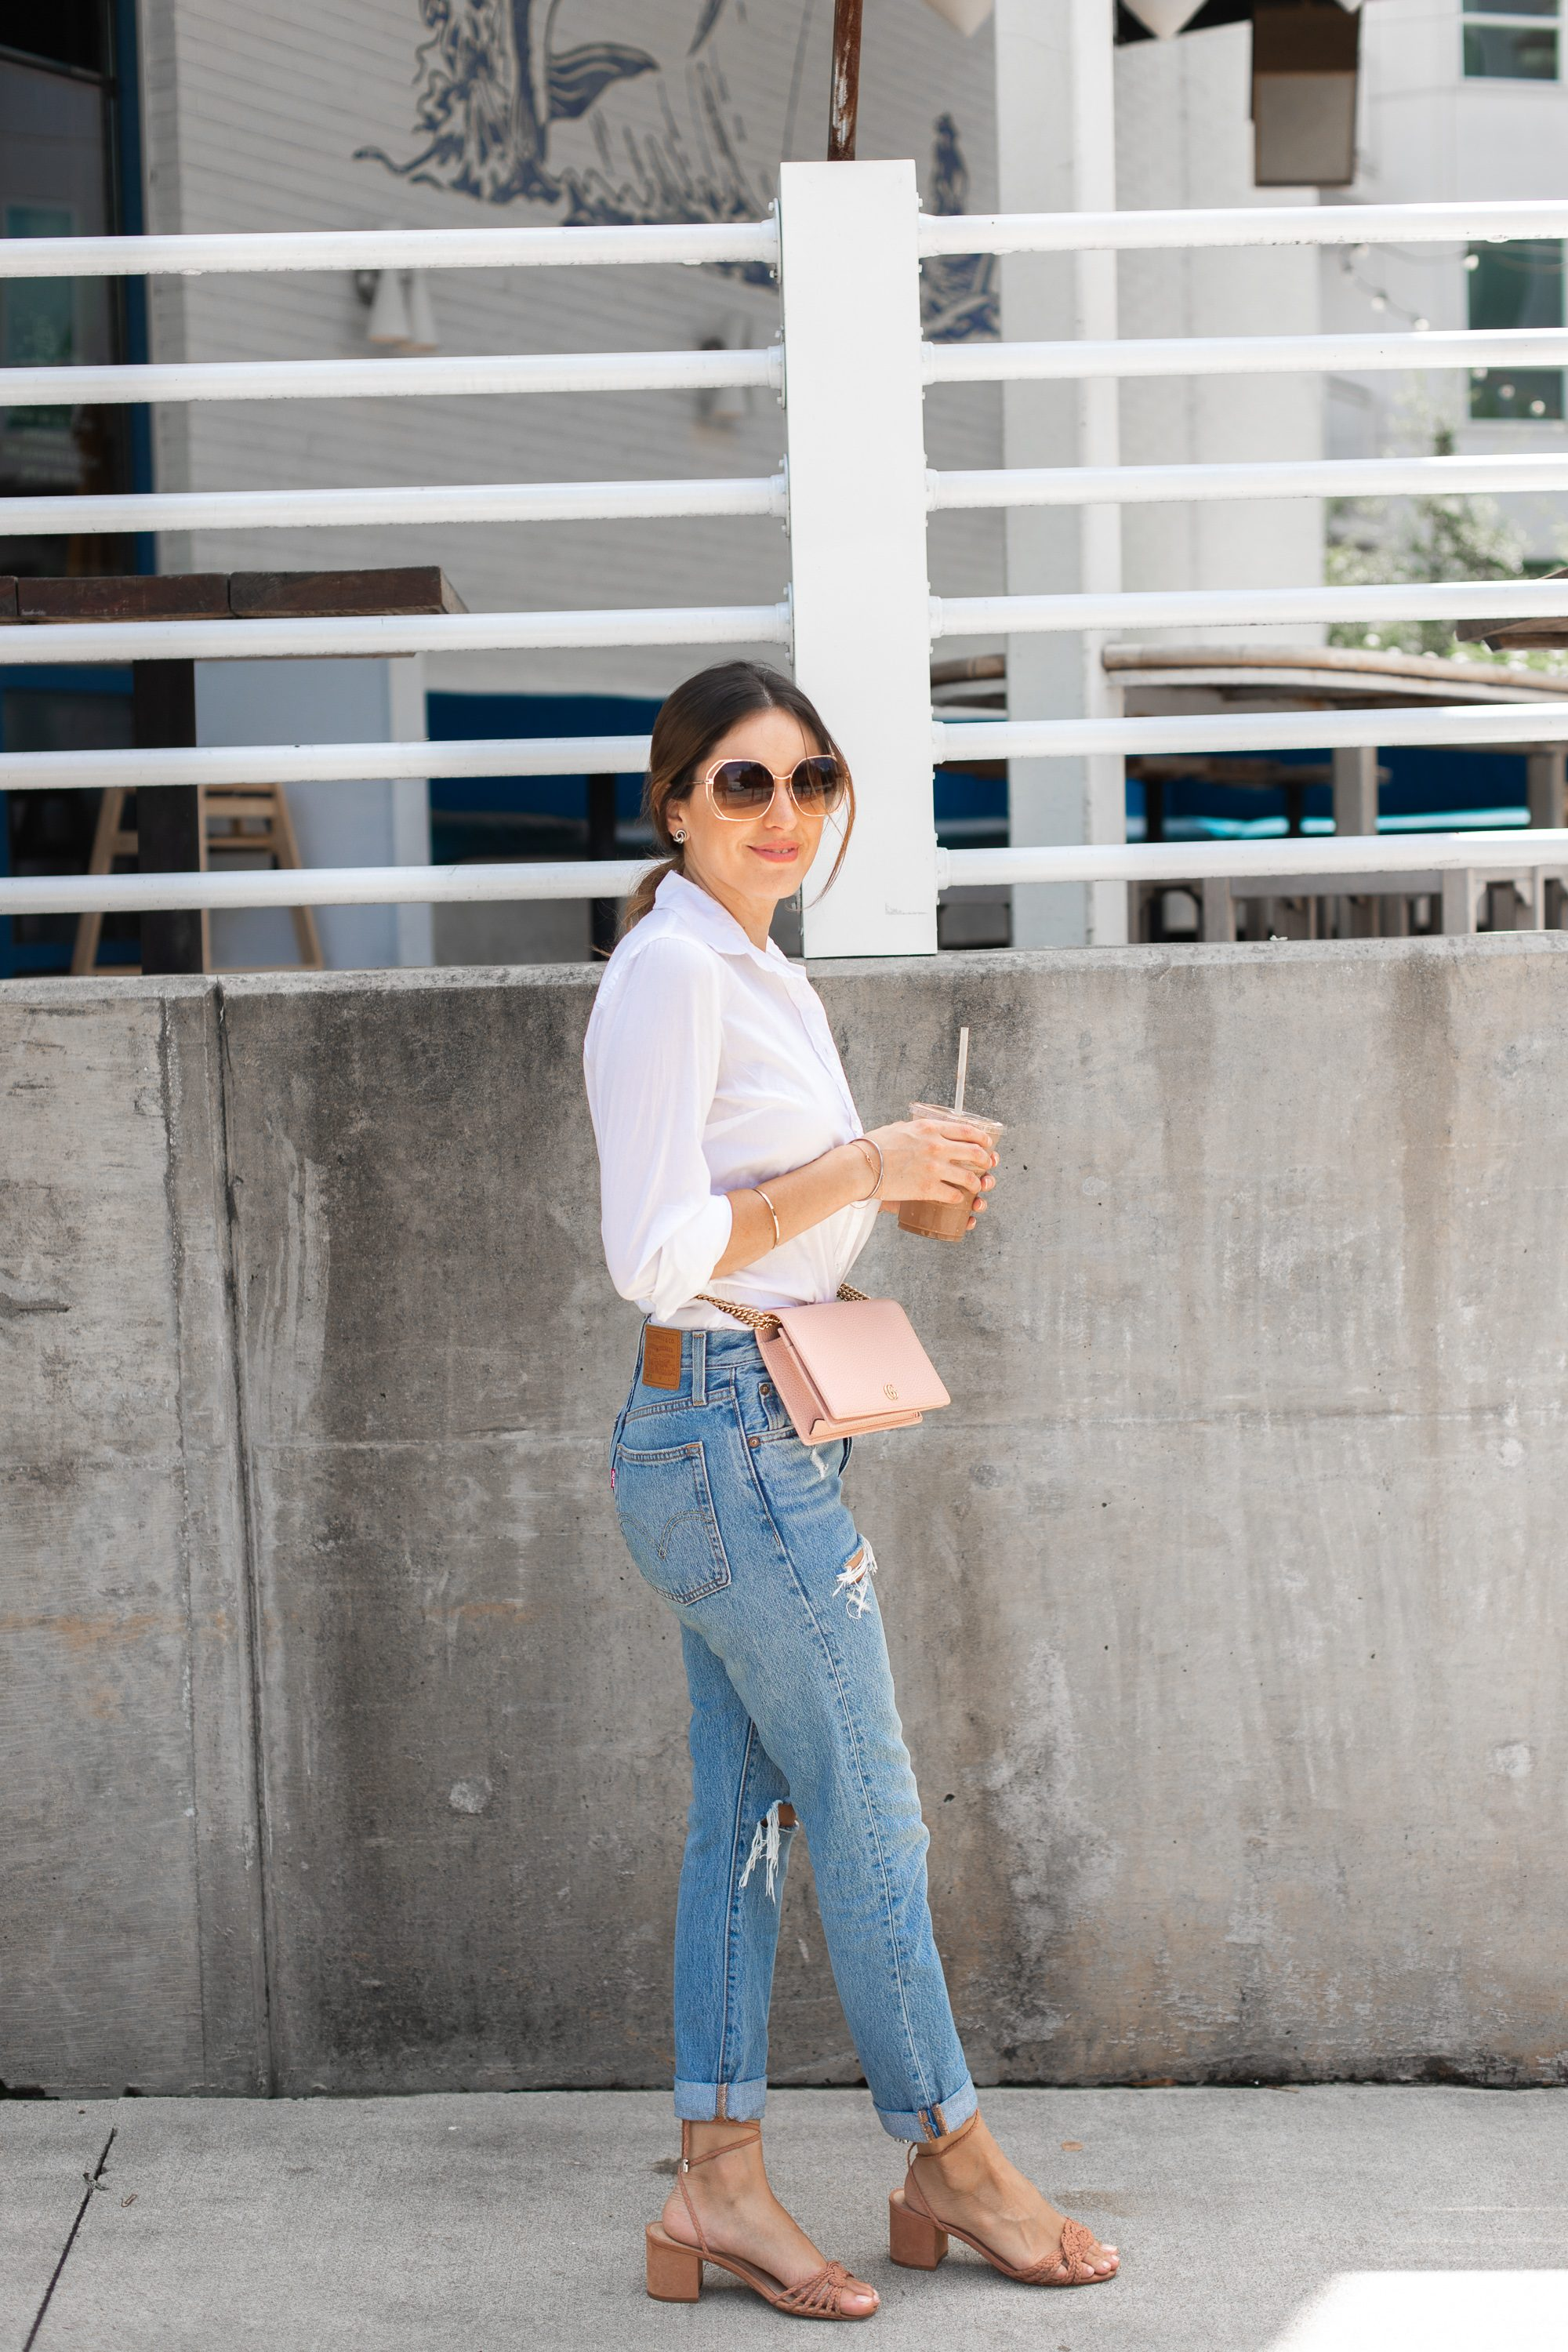 business casual, weekend style, how to style mom jeans, waist bags, belt bag, how to wear ripped jeans to work, casual style, wearing jeans to a business meeting, blogger style, pink gucci crossbody, Levis Womens 501 Skinny Jeans Cant Touch This Blue, best jeans on amazon